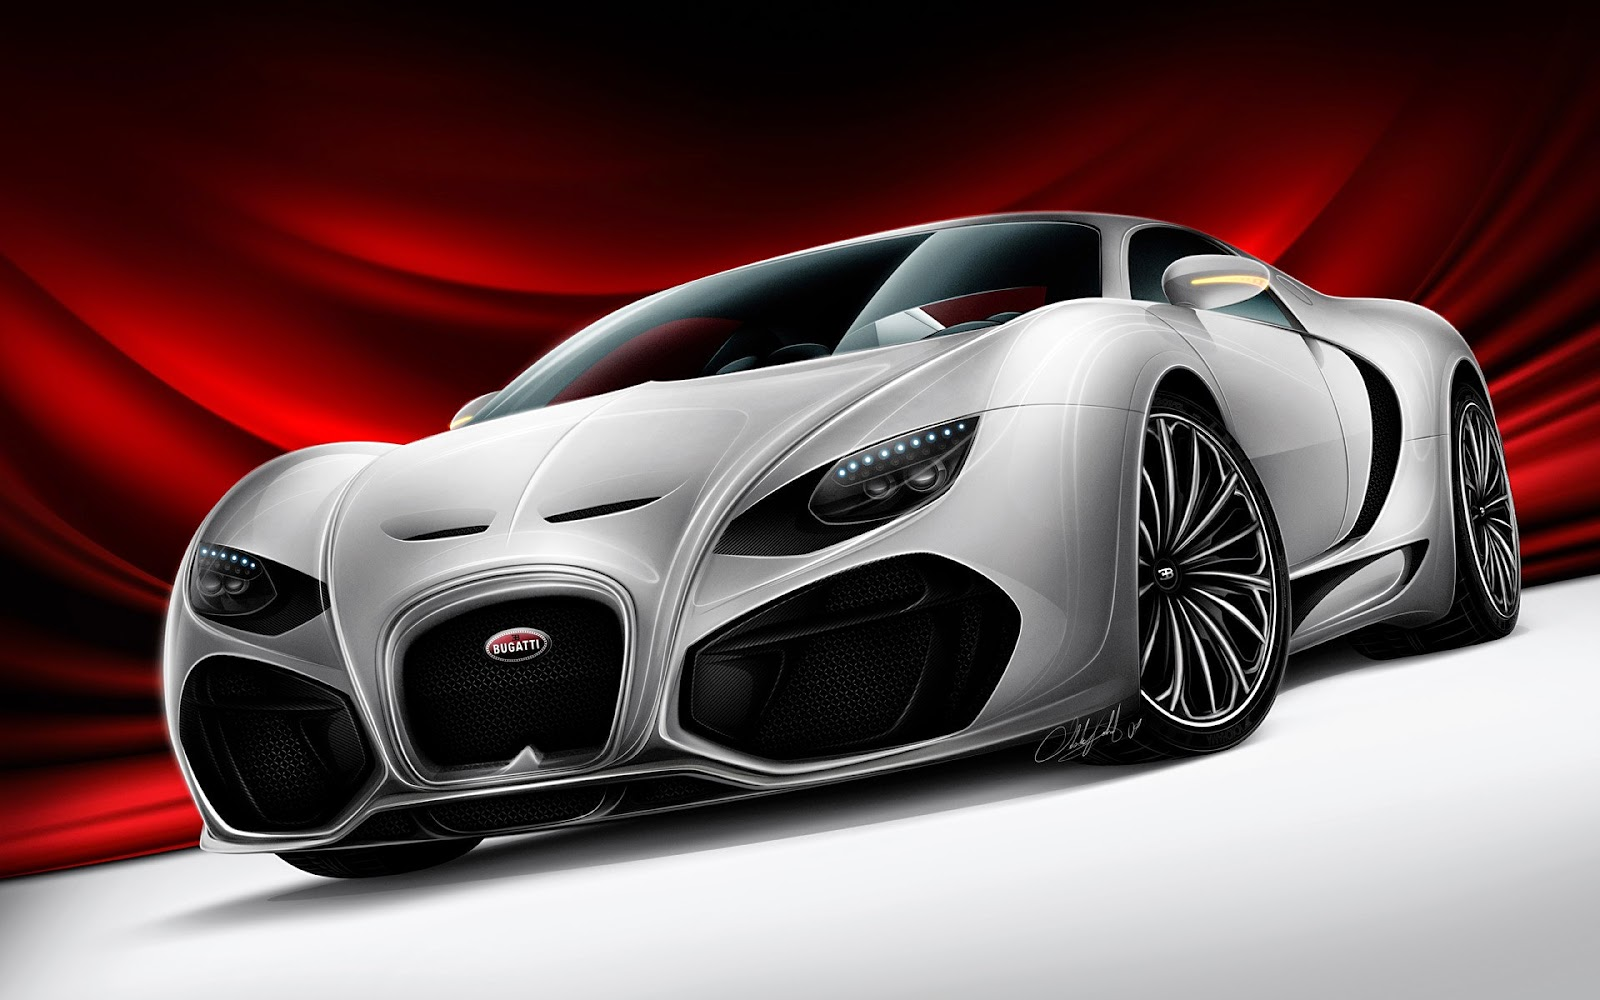 Car HD Wallpapers Download For Free - Free HD Wallpapers